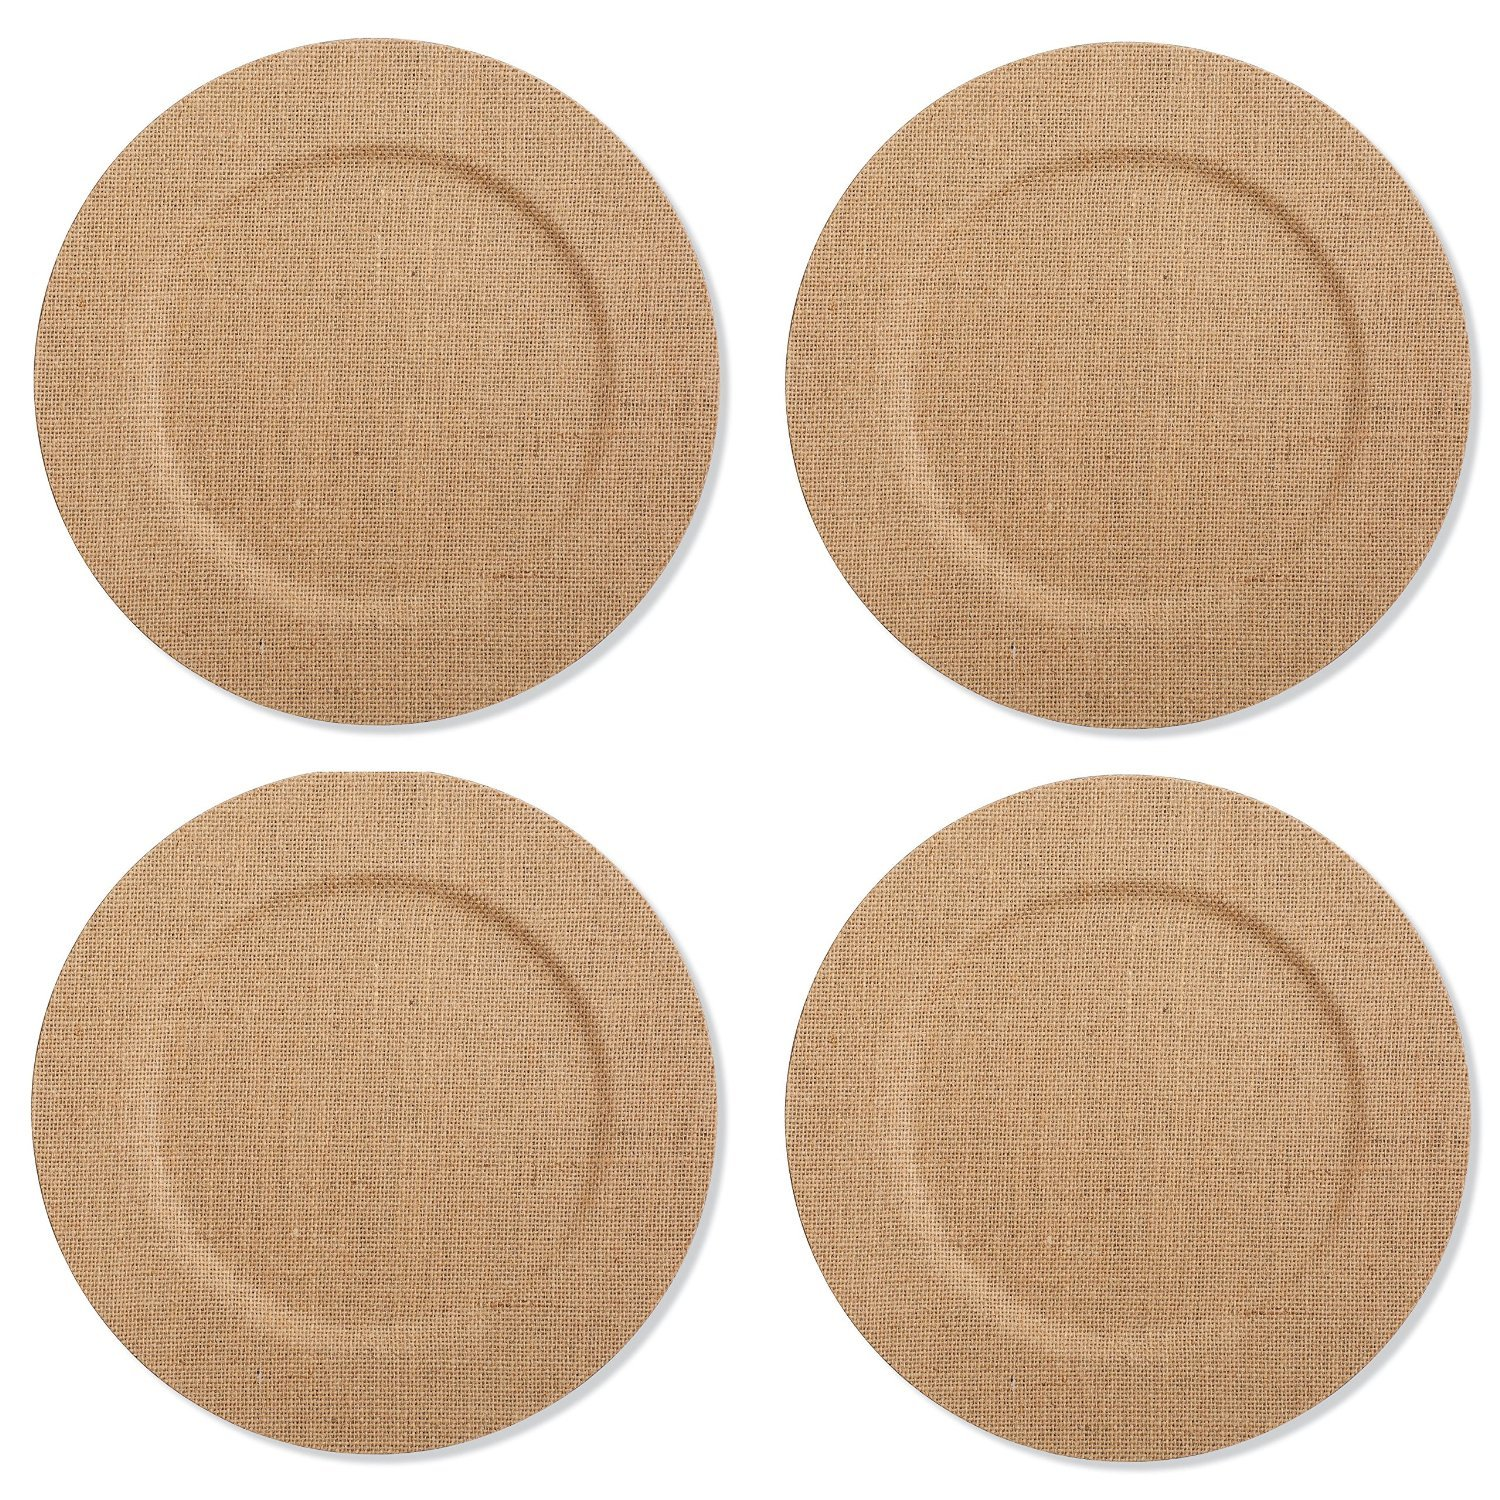 Mud Pie Burlap Covered Dinner Plate Charger (Liner) Set of 4  sc 1 st  Amazon.com & Amazon.com: Charger u0026 Service Plates: Home u0026 Kitchen